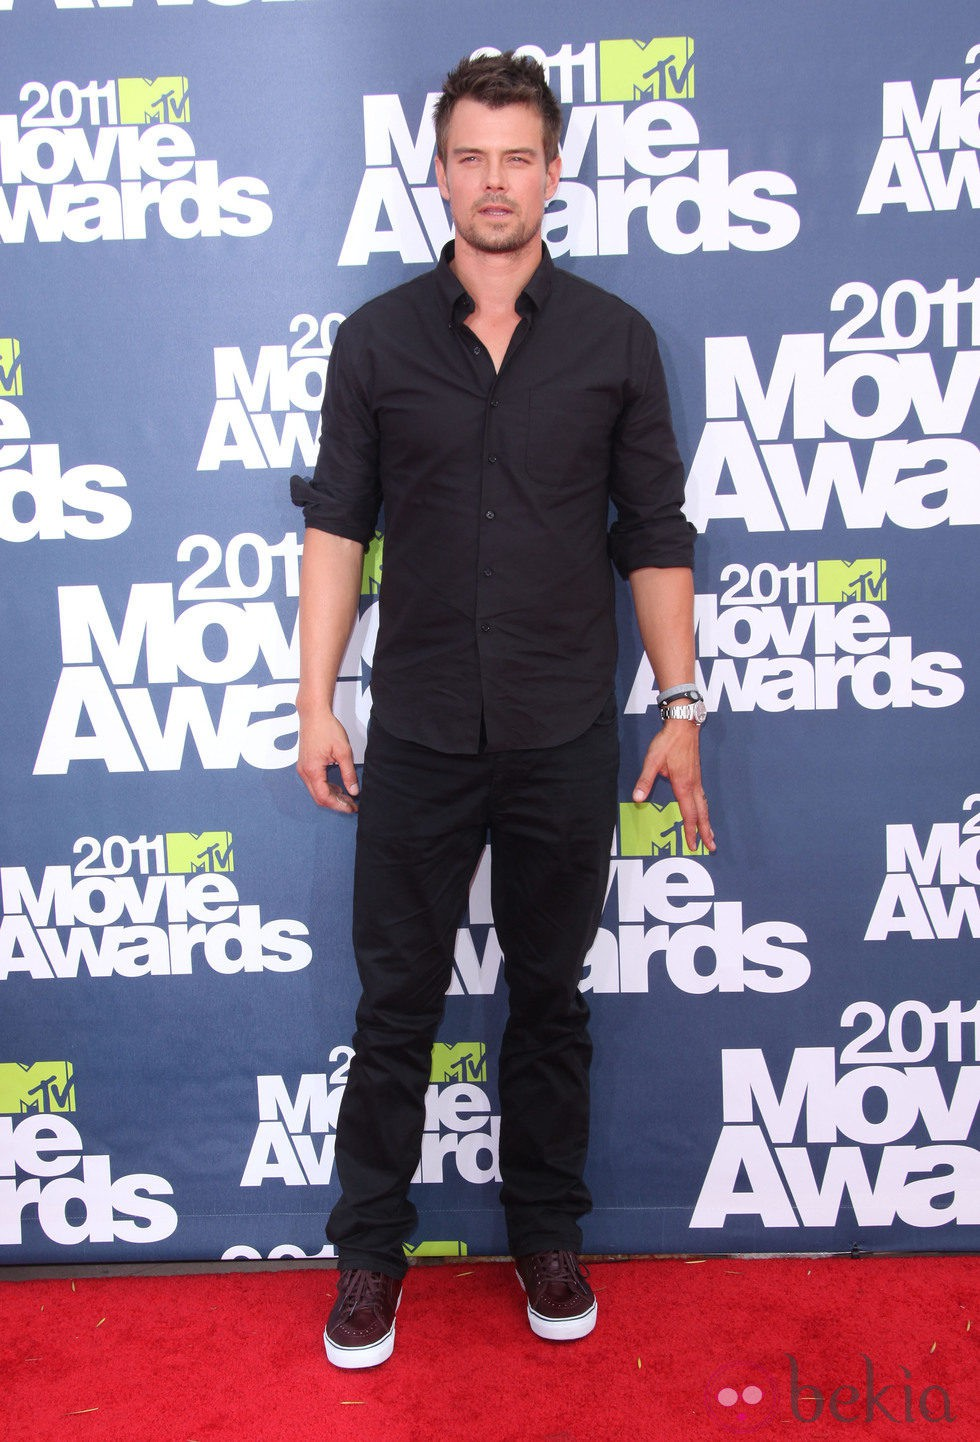 Josh Duhamel en la alfombra roja de los MTV Movie Awards 2011